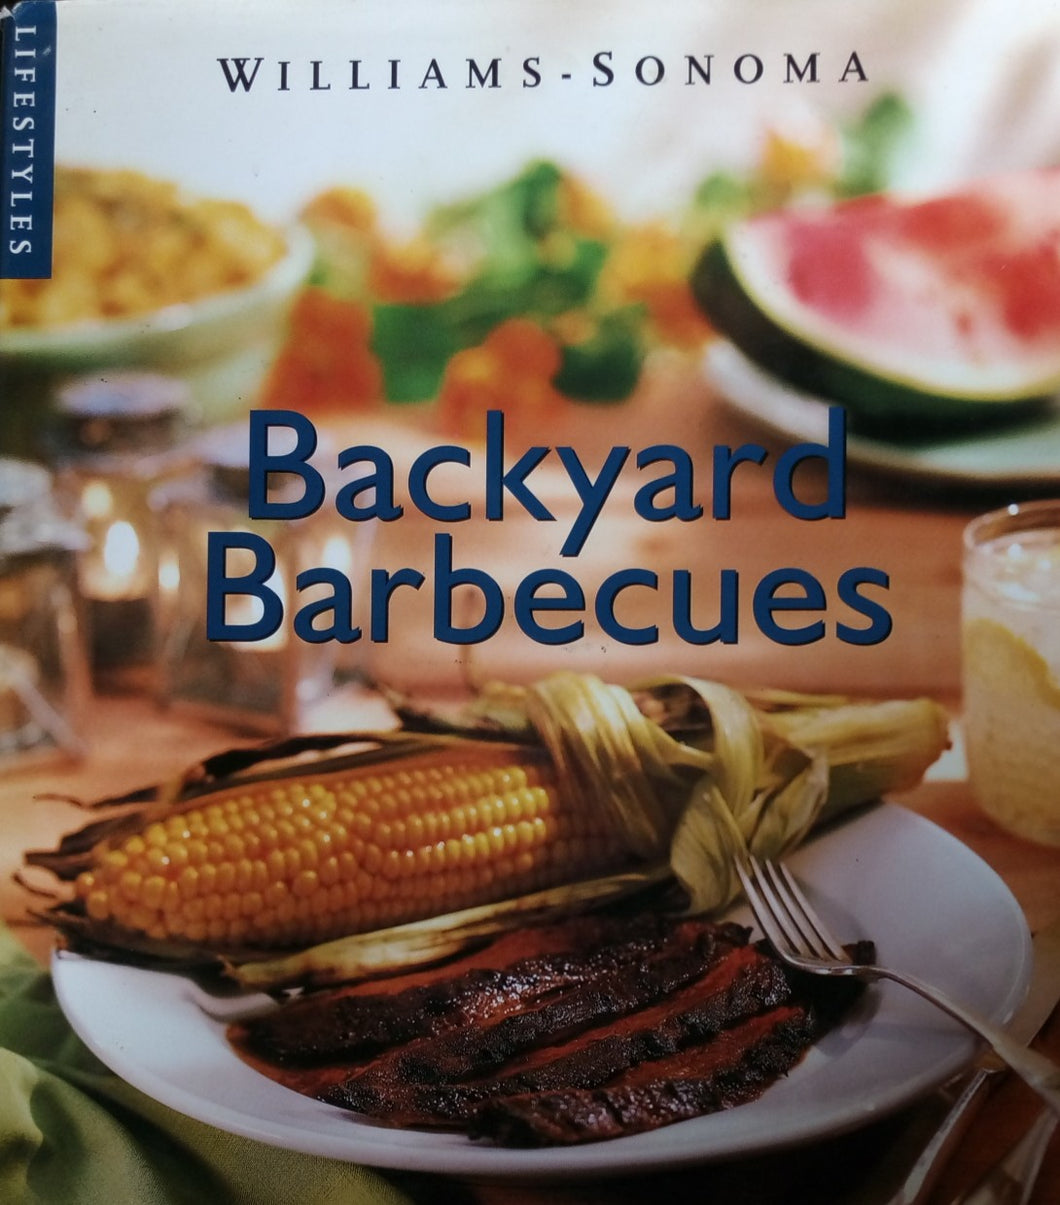 Backyard barbecue by:william sonoma